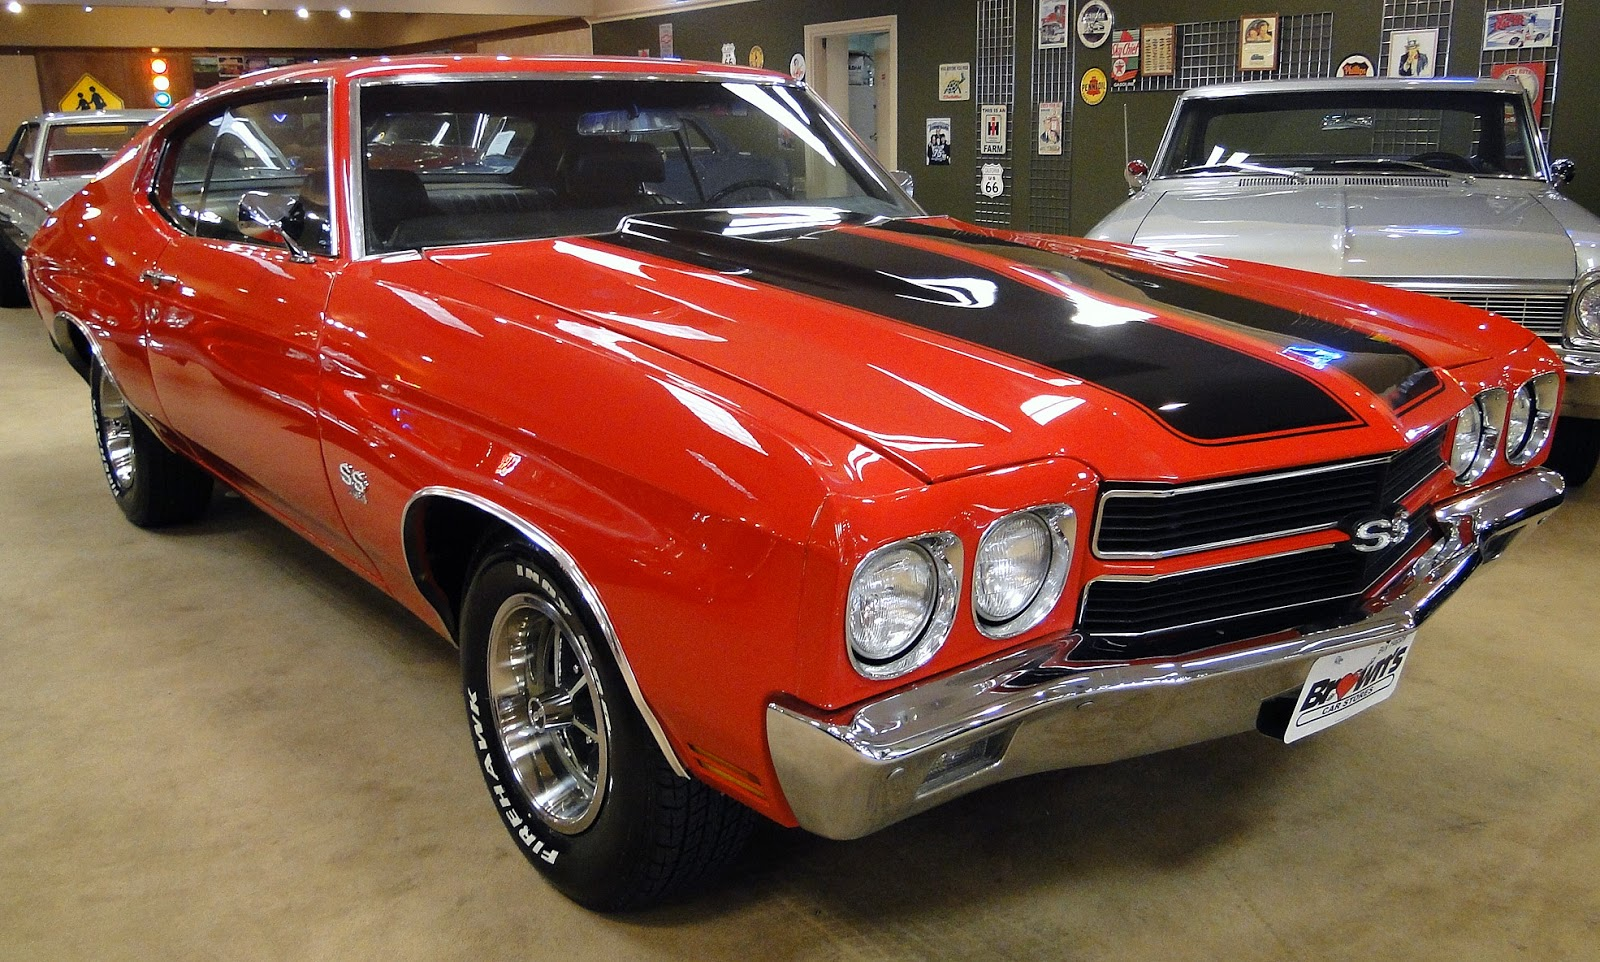 1970 Chevelle SS Muscle Car